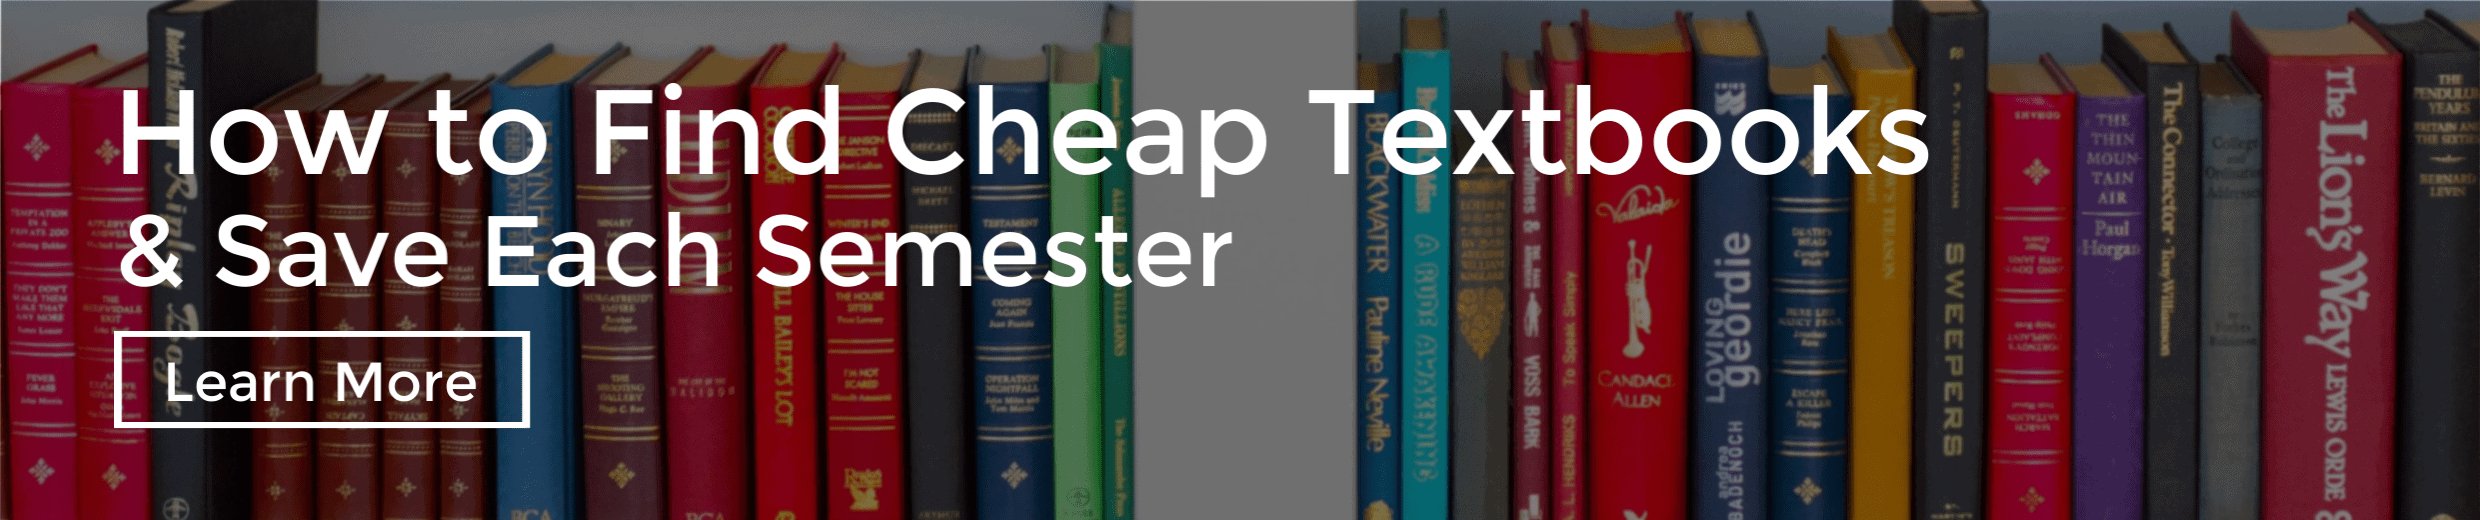 Textbooks Are Expensive. Forget Why That Is—Here's How to Find Cheap Textbooks & Save Each Semester.